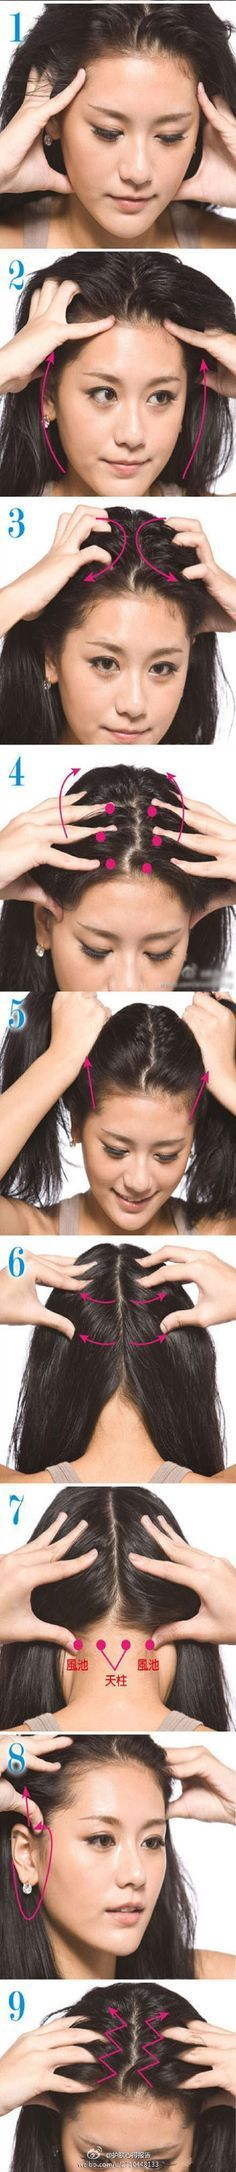 Massage Scalp To Stimulate Hair Growth - 10 Leading Tips and DIYs to Grow Your Hair Faster